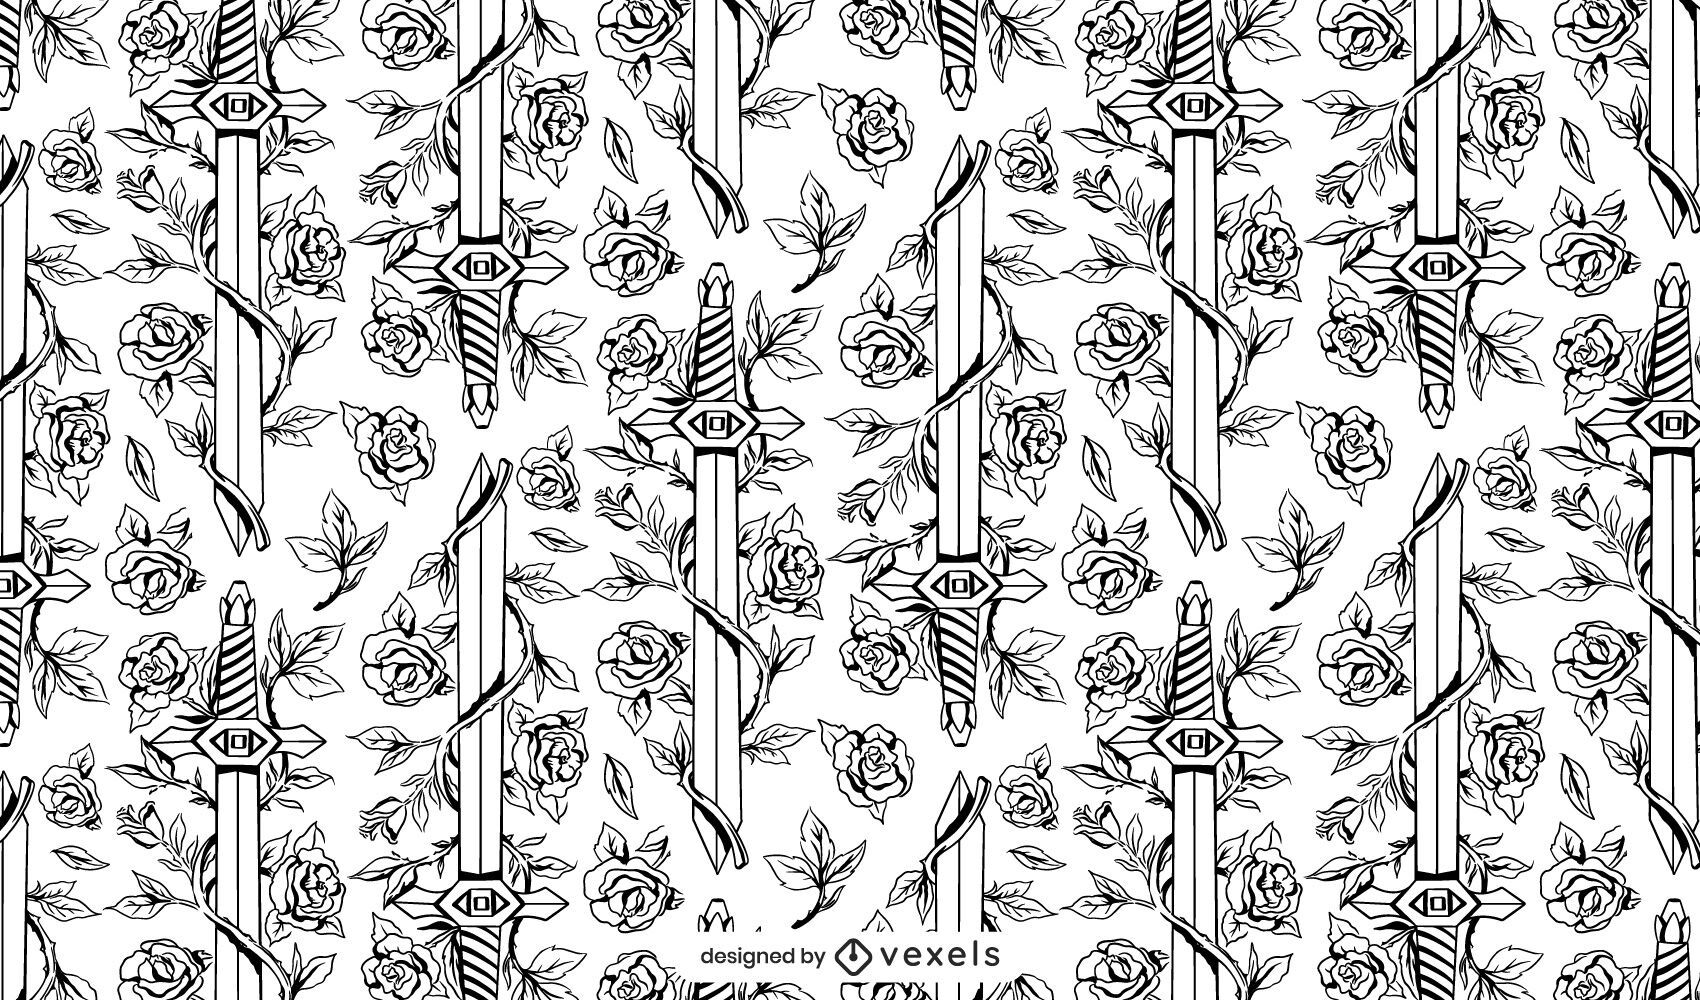 Sword weapon roses nature pattern design